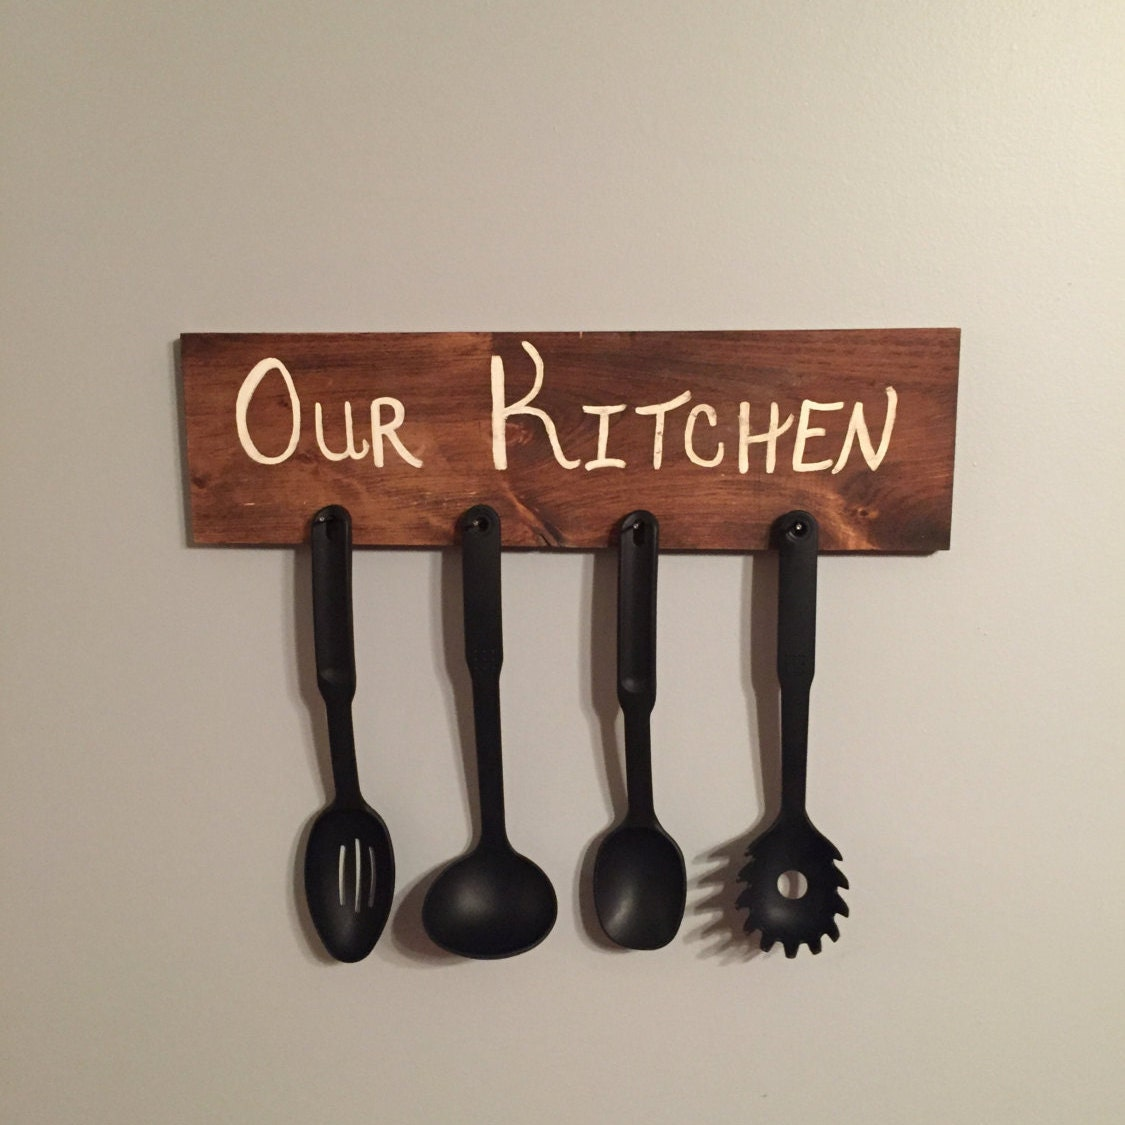 Wooden Utensil Wall Decor : Kitchen wall decor wood sign utensil by